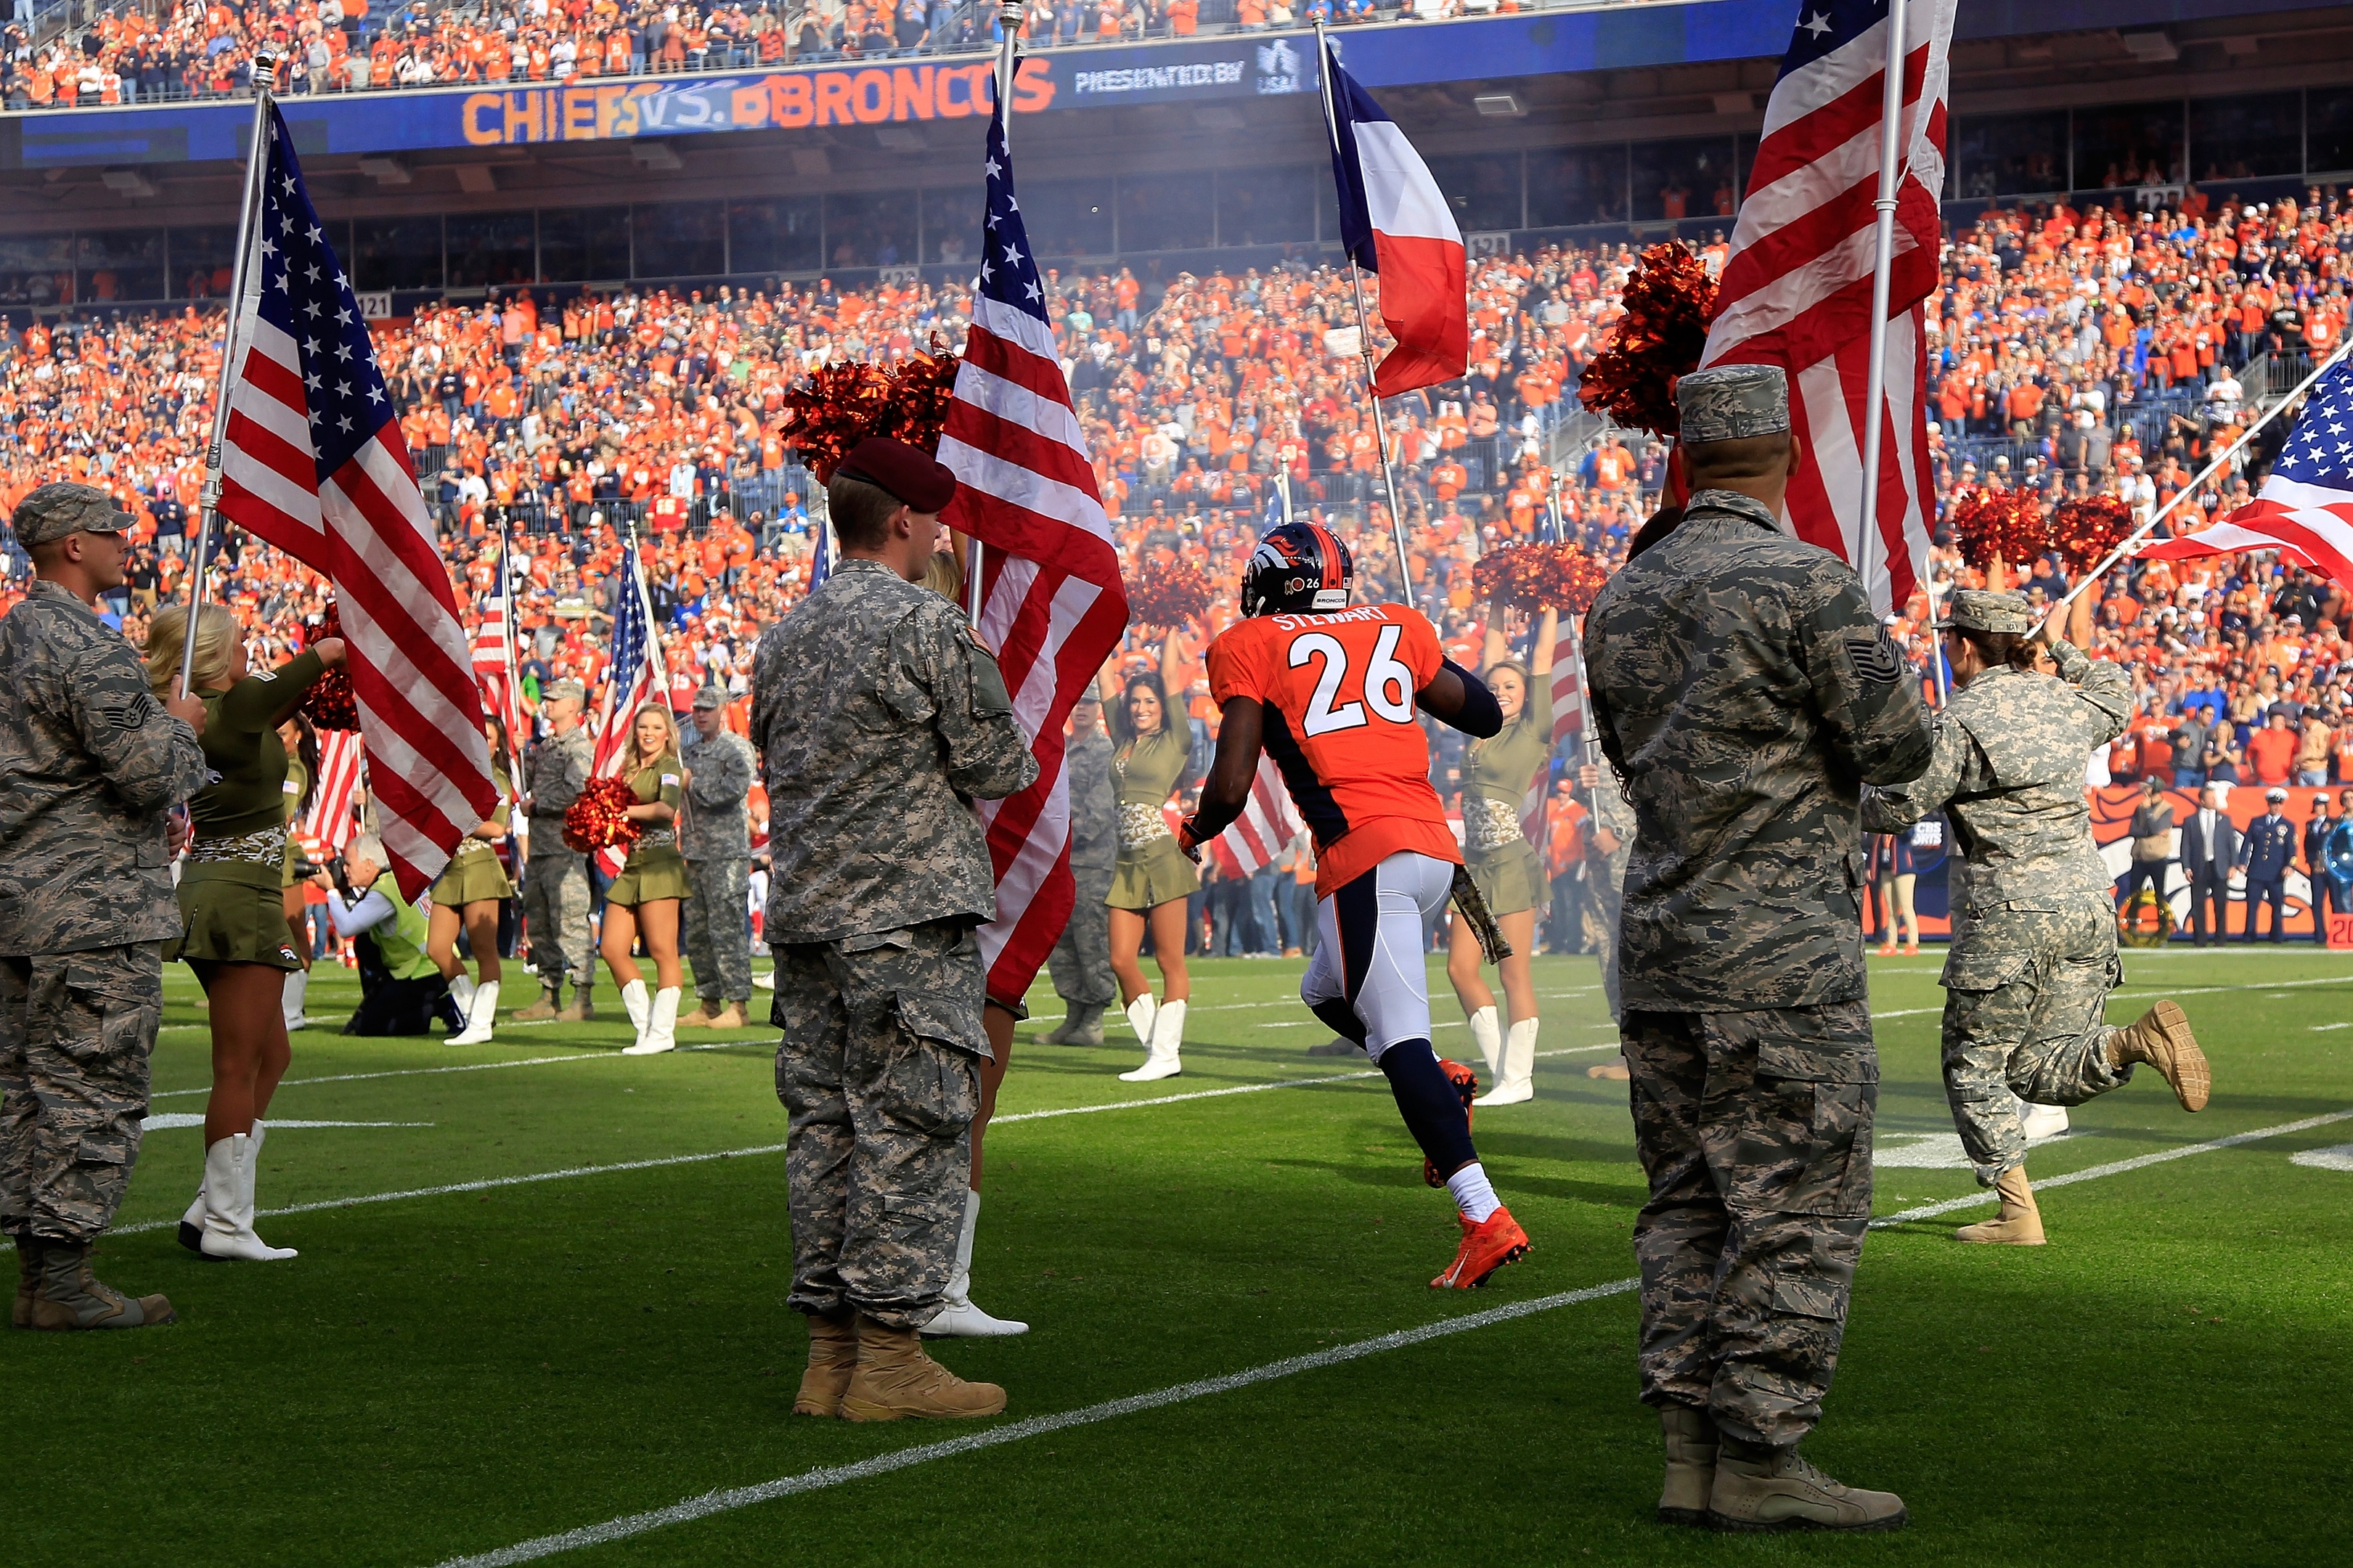 Darian Stewart #26 of the Denver Broncos carries the French flag onto the field in honor of the victims of the recent terrorist attacks in Paris prior to the game between the Kansas City Chiefs and the Denver Broncos as US Military Appreciation Day is observed at Sports Authority Field at Mile High on November 15, 2015 in Denver, Colorado